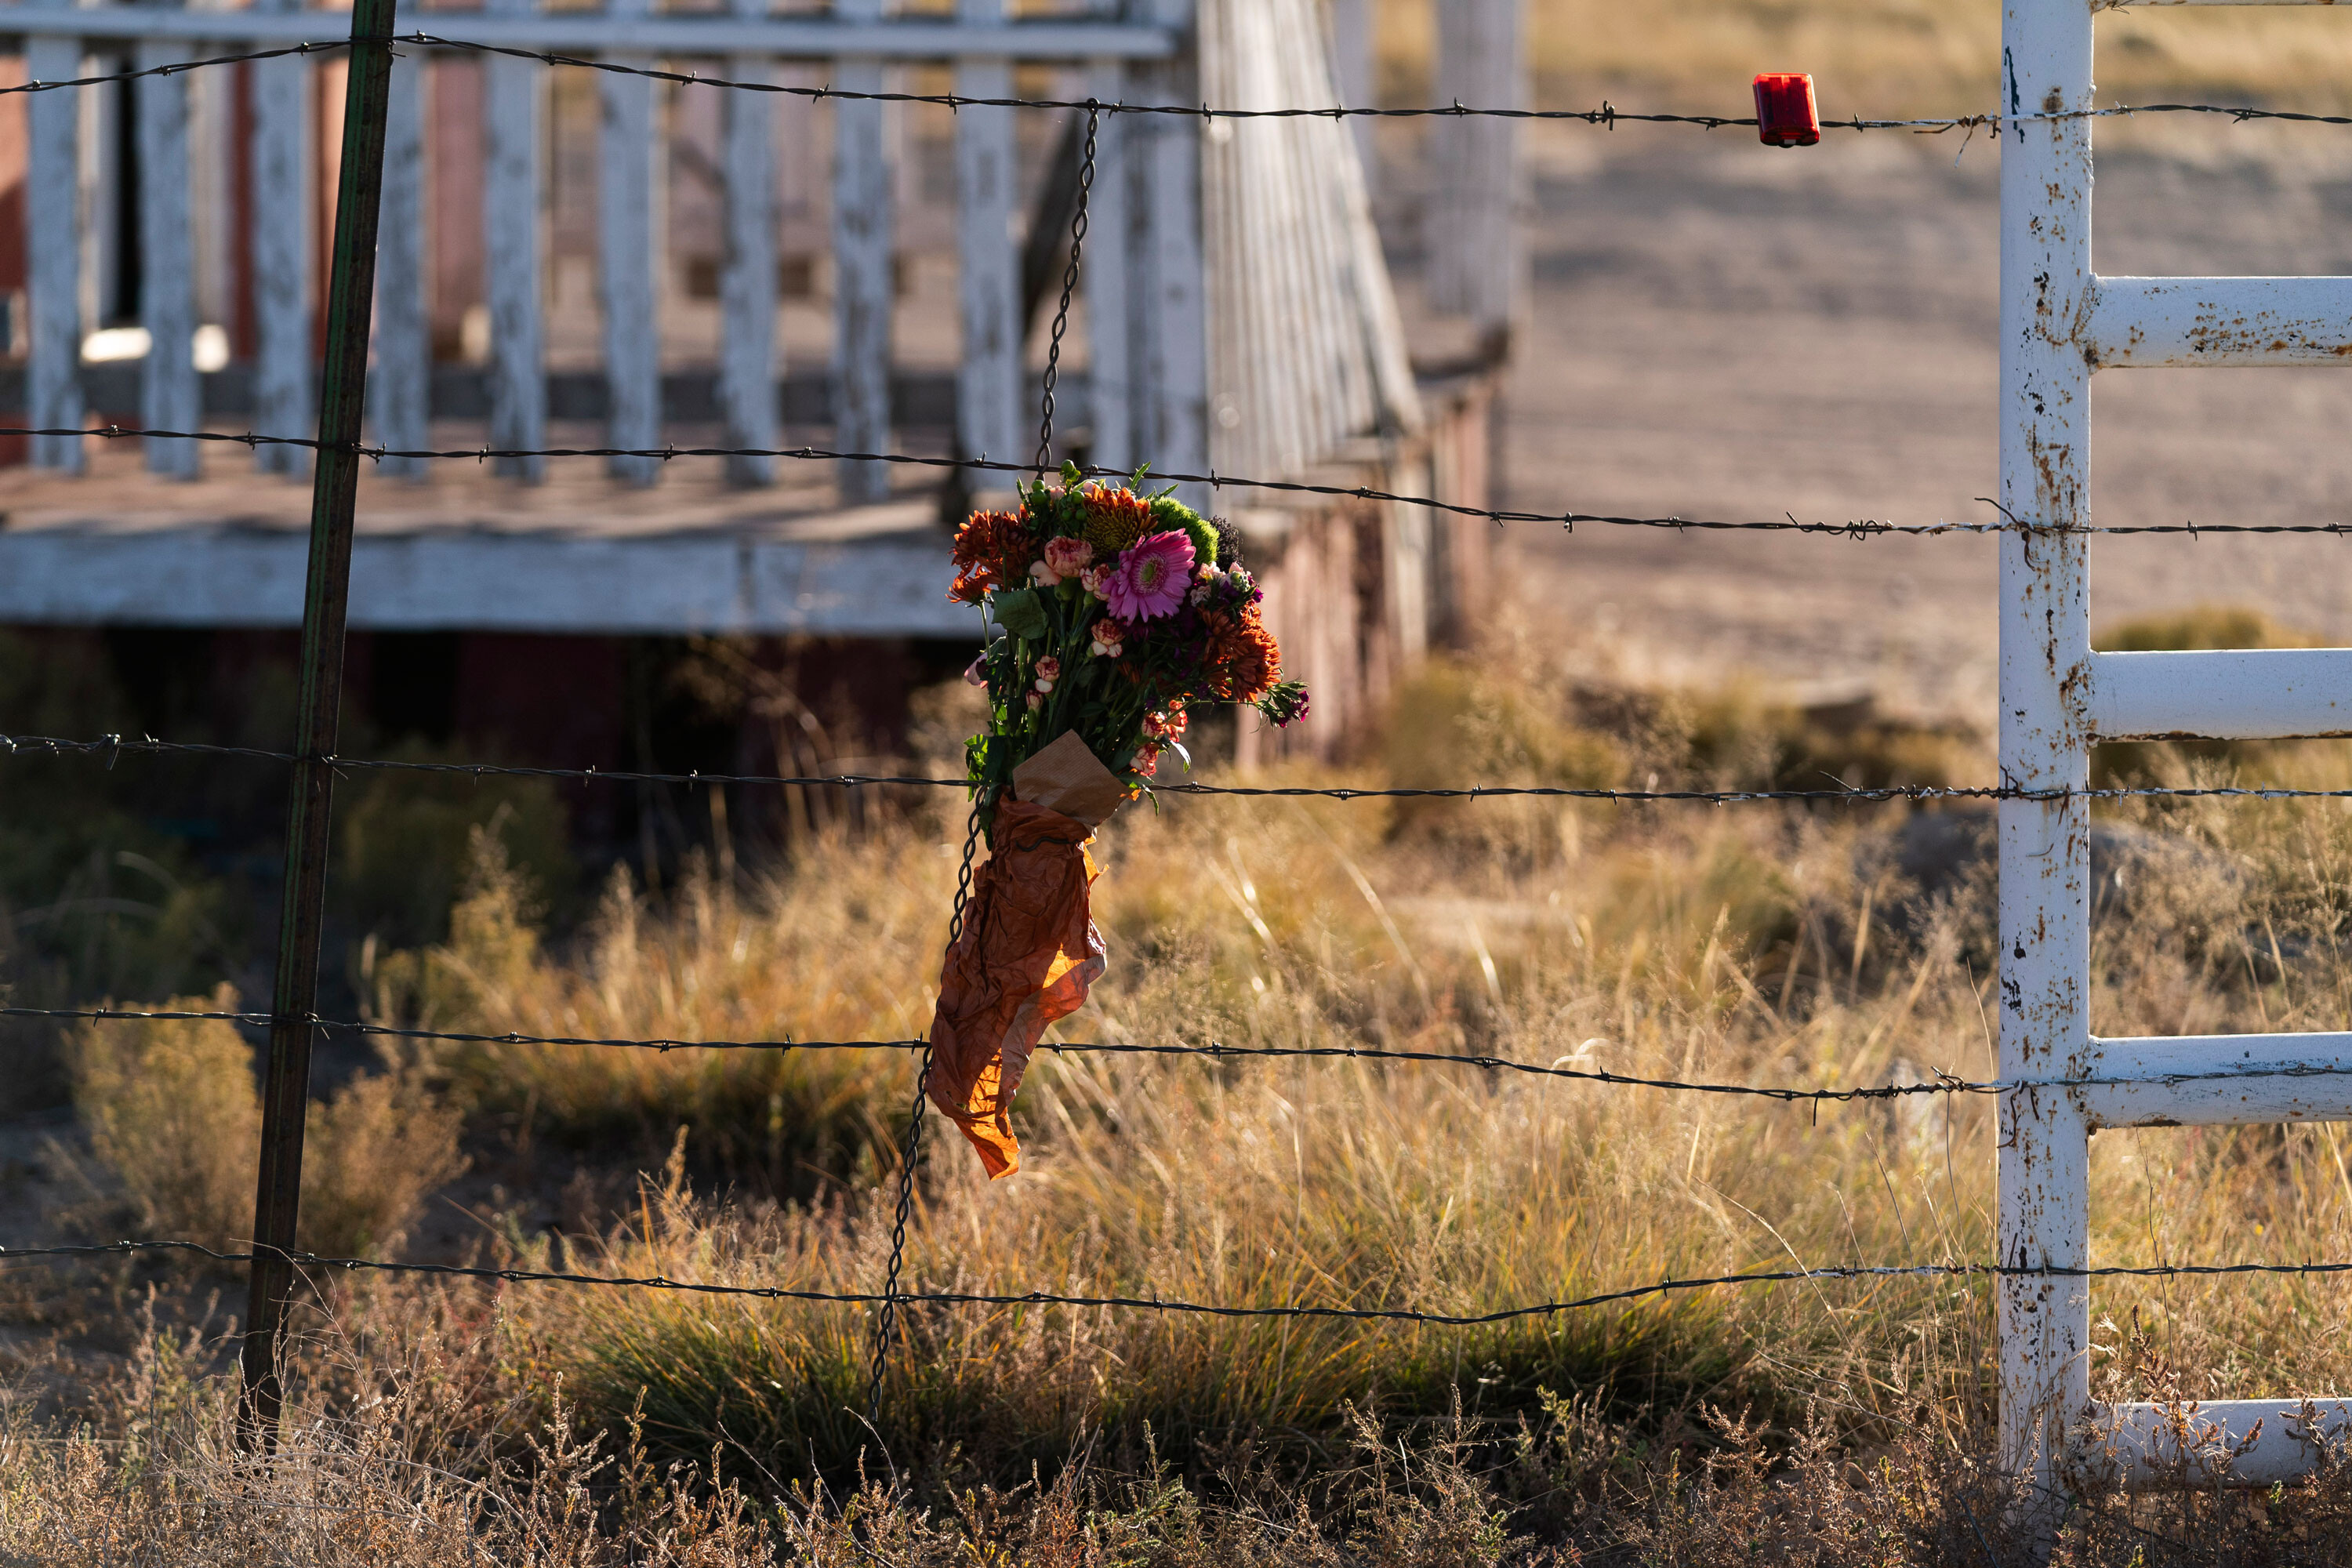 How the fatal 'Rust' shooting unfolded, moment by moment